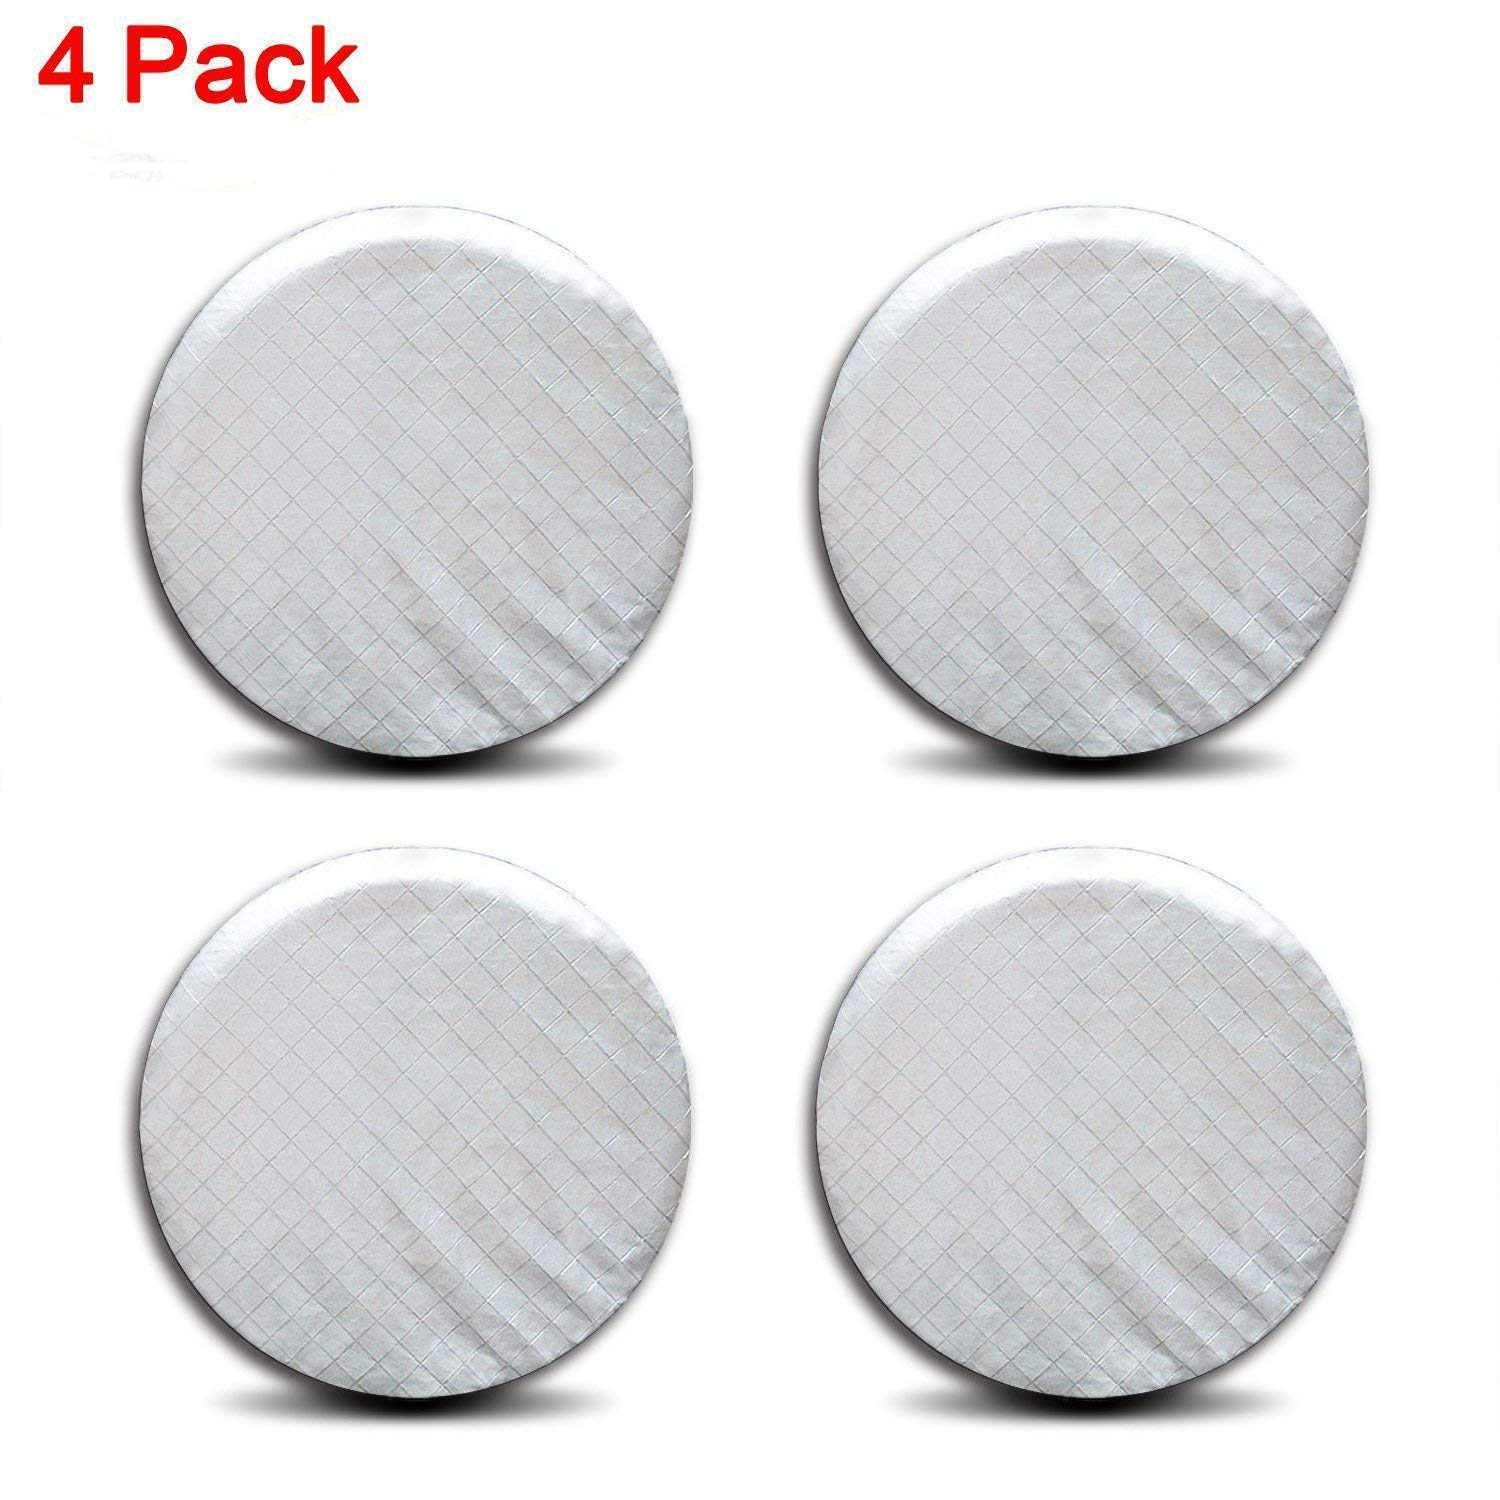 spareflying Set of 4 Tire Covers, Waterproof Aluminum Film Tire Sun Protectors,for 27'' - 29'' RV Auto Truck Camper Trailer Motorhome Tire Wheel Cover Diameter,Silver,Weatherproof Tire Protectors